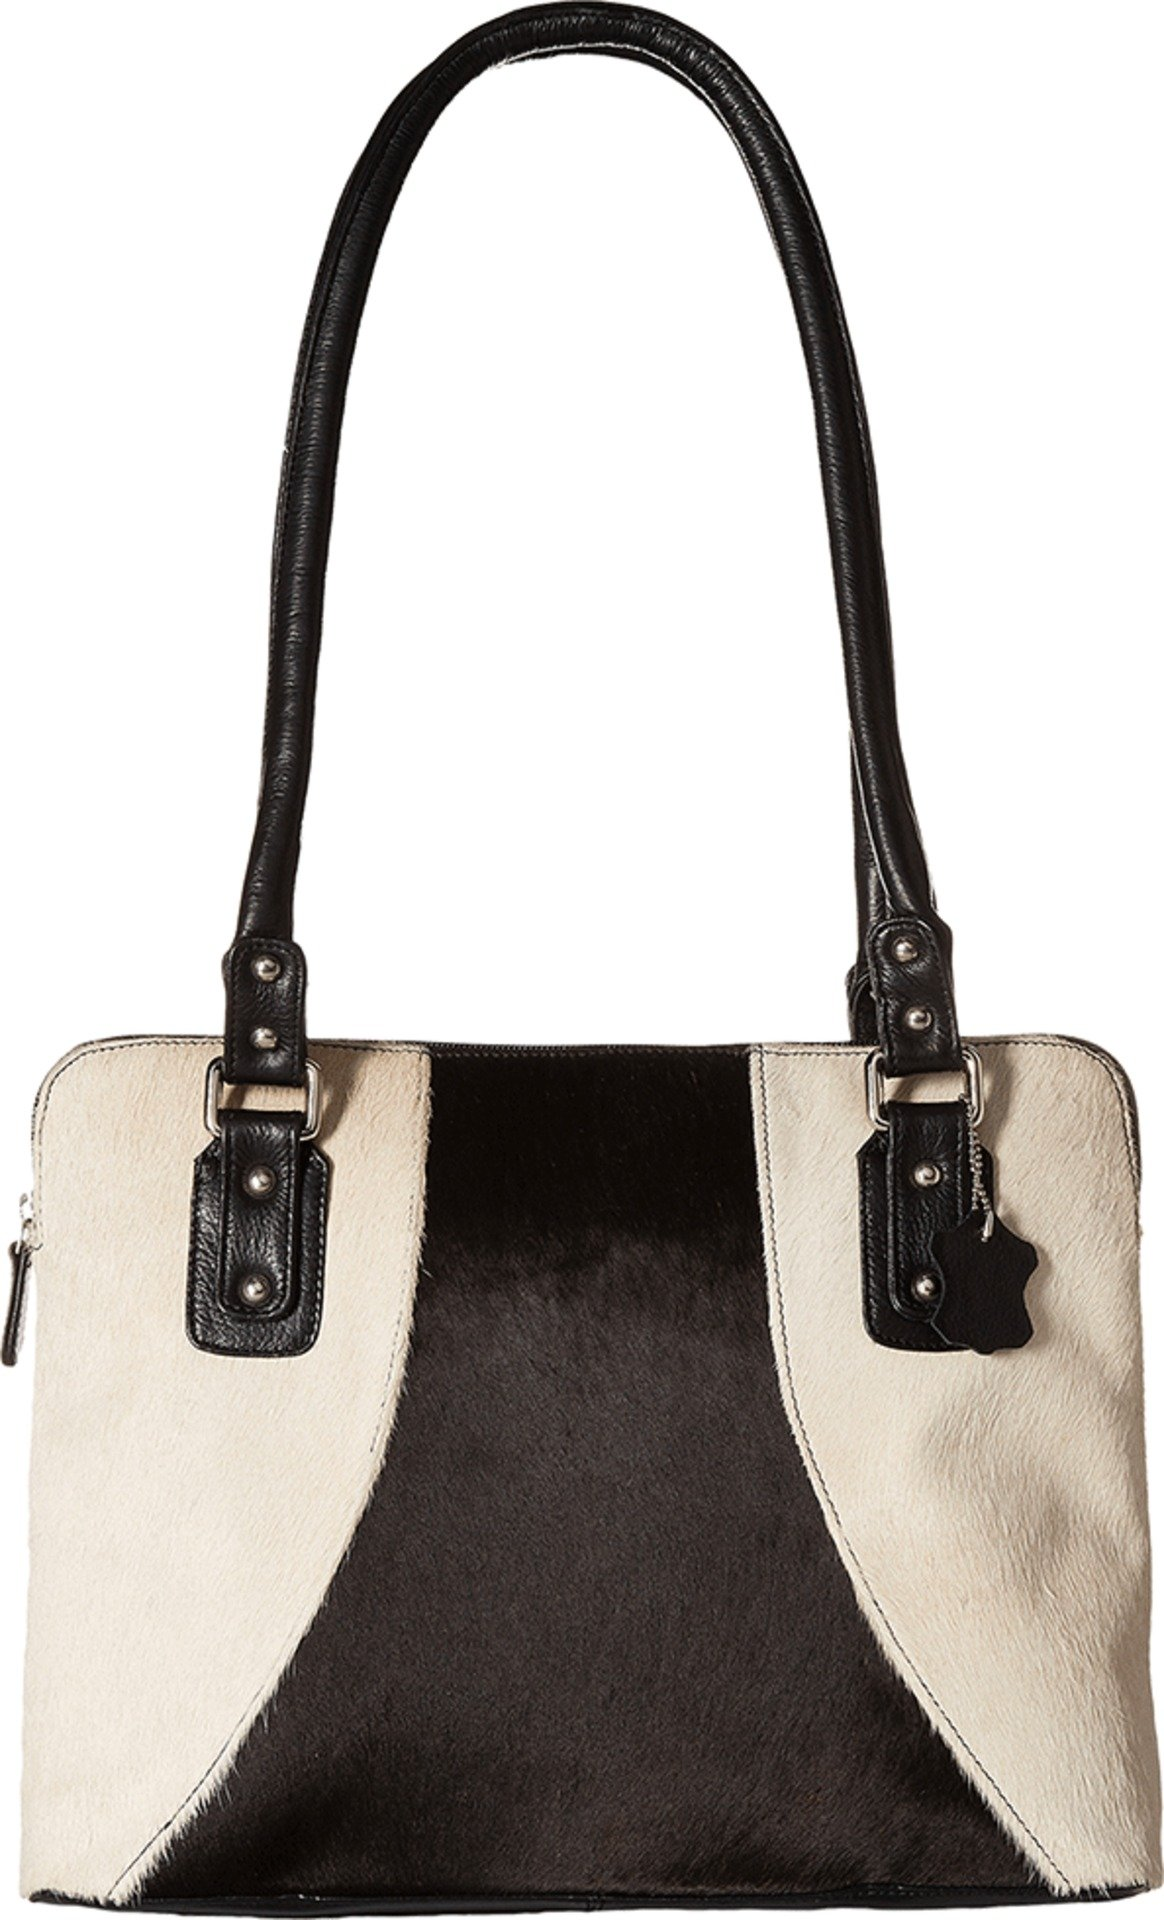 Scully Women's And White Hair-On-Hide Shoulder Bag Animal Prt One Size